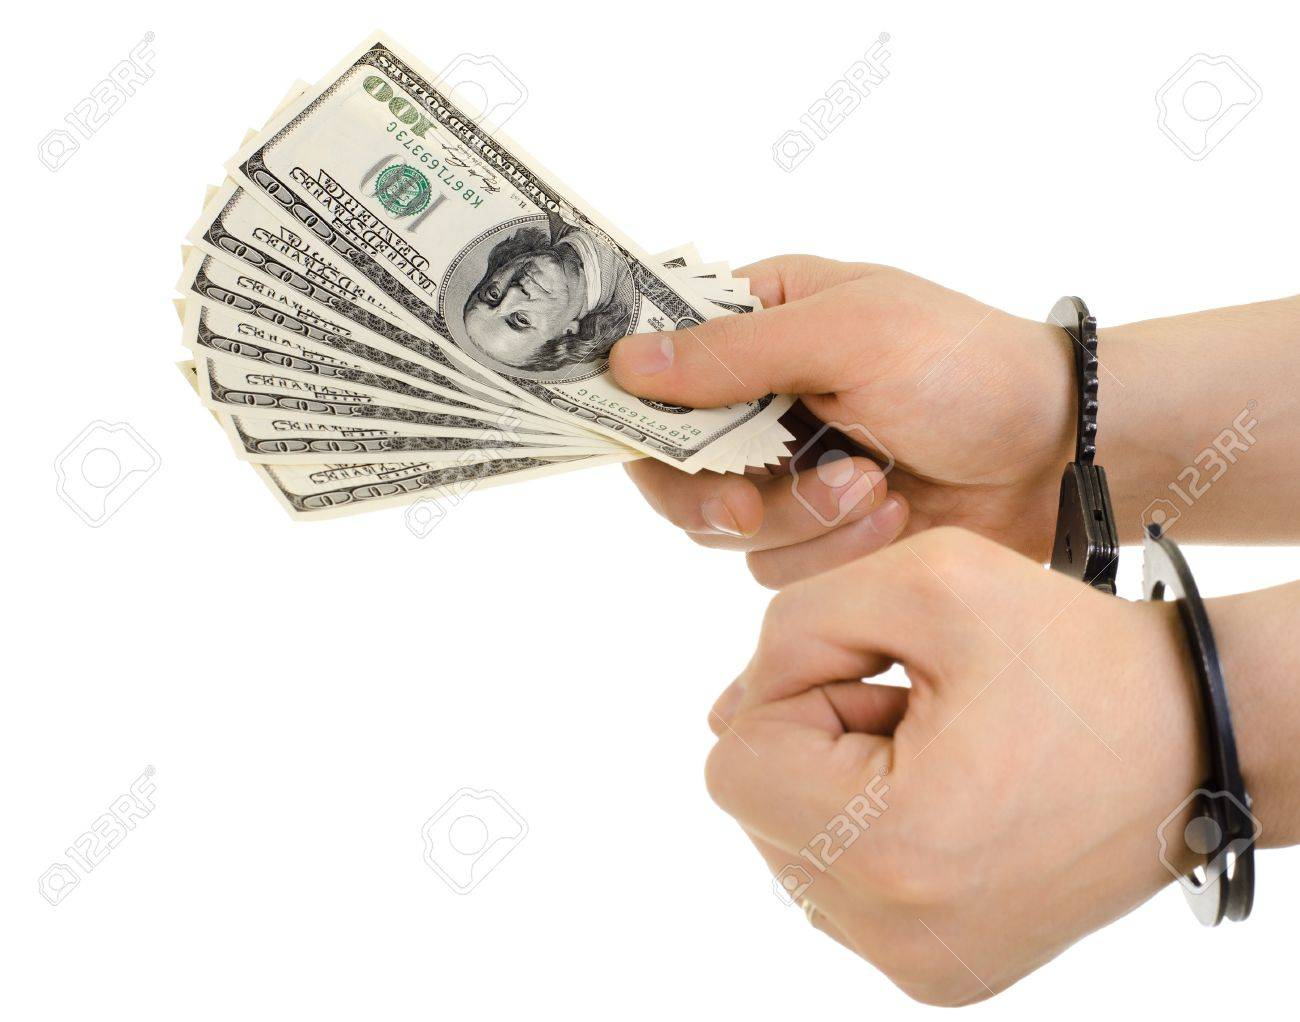 hand in shackle hold  currency note dollars, on white background, isolated Stock Photo - 16713159